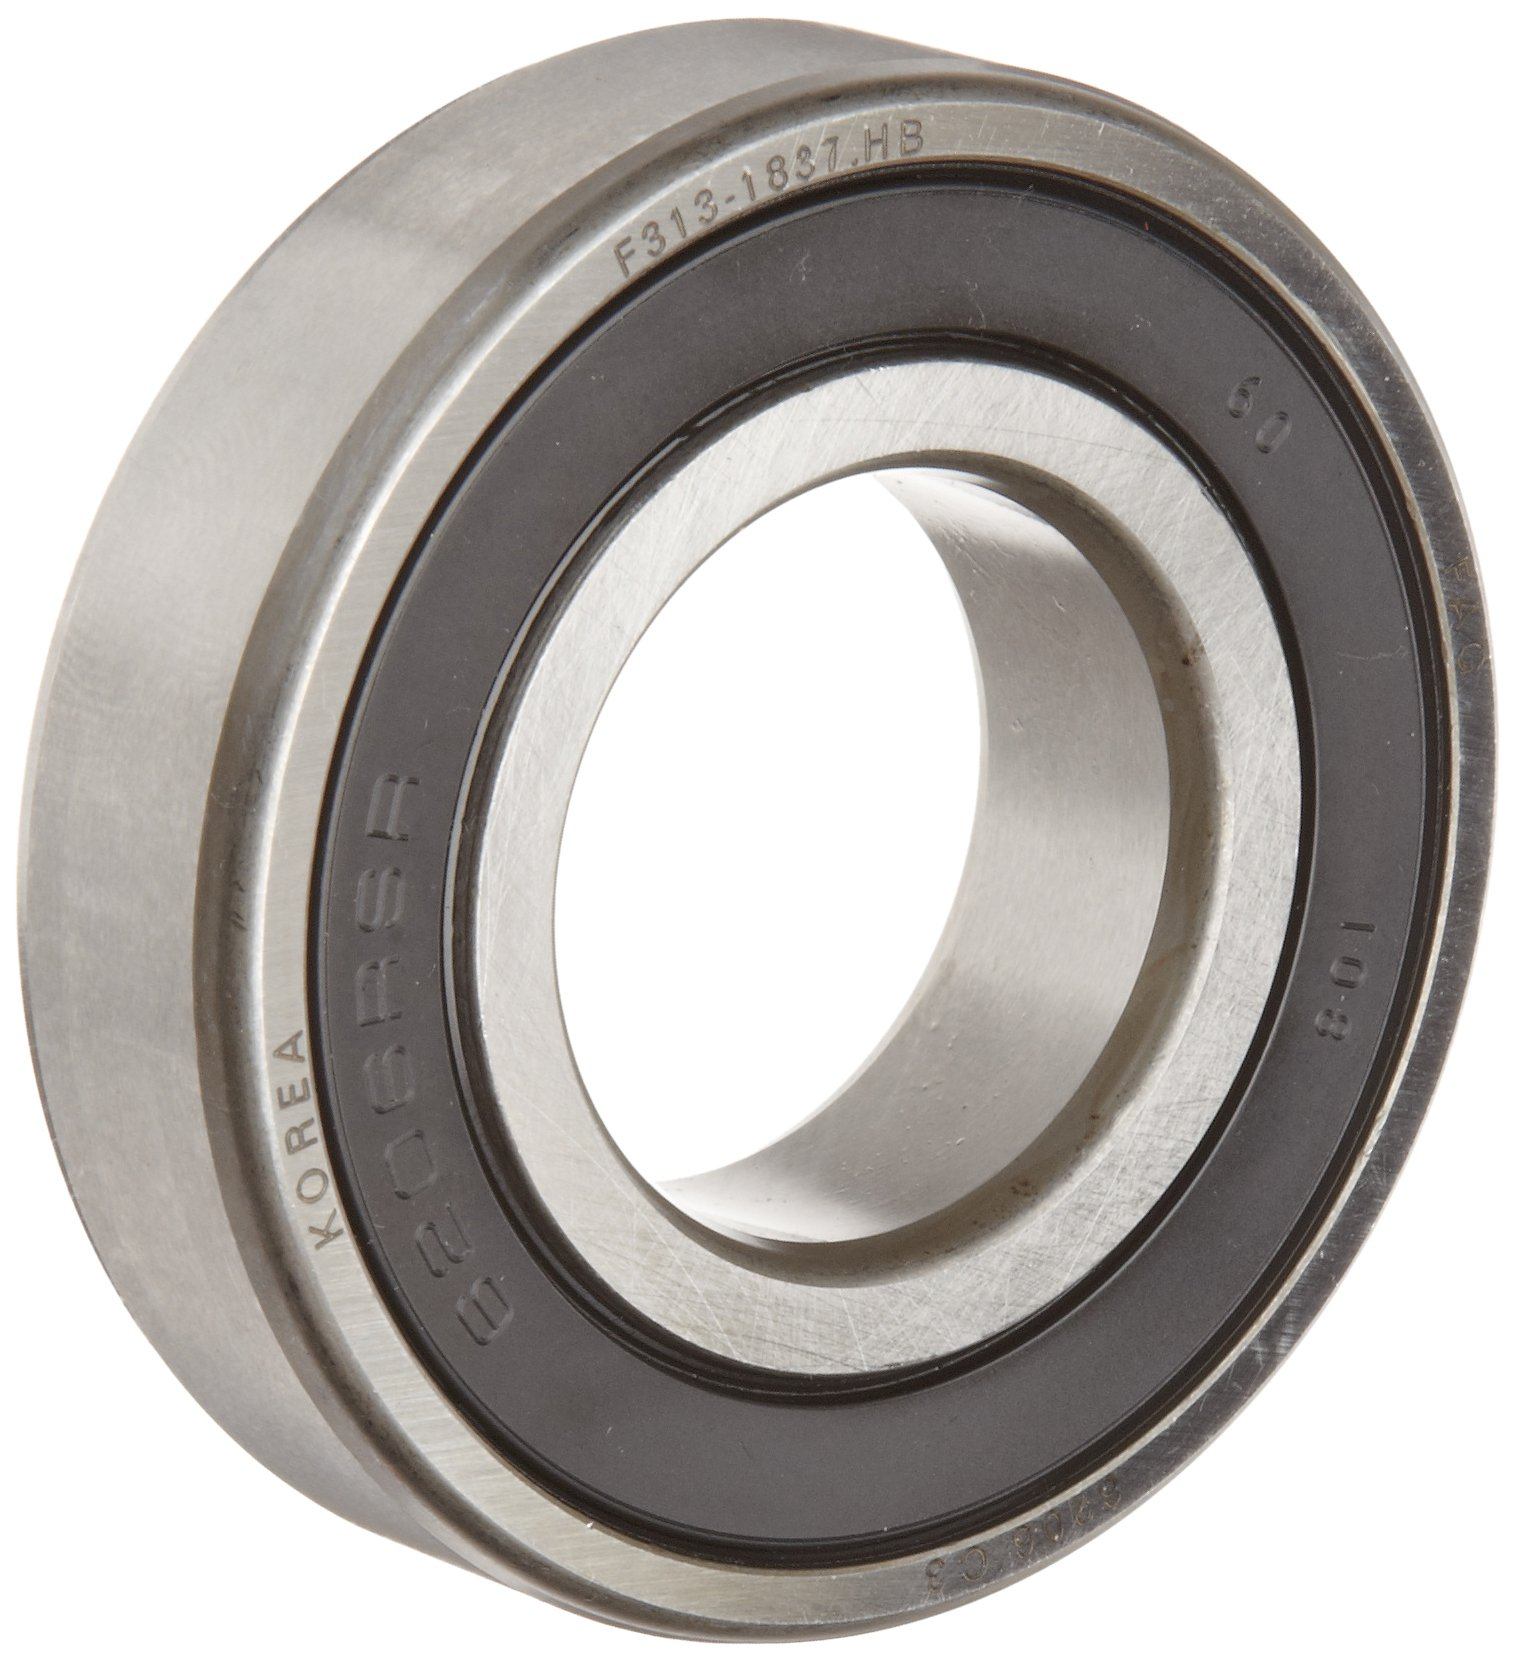 FAG 6217-2RSR-C3 Deep Groove Ball Bearing, Single Row, Double Sealed, Steel Cage, C3 Clearance, Metric, 85mm ID, 150mm OD, 28mm Width, 5000rpm Maximum Rotational Speed, 14400lbf Static Load Capacity, 18700lbf Dynamic Load Capacity